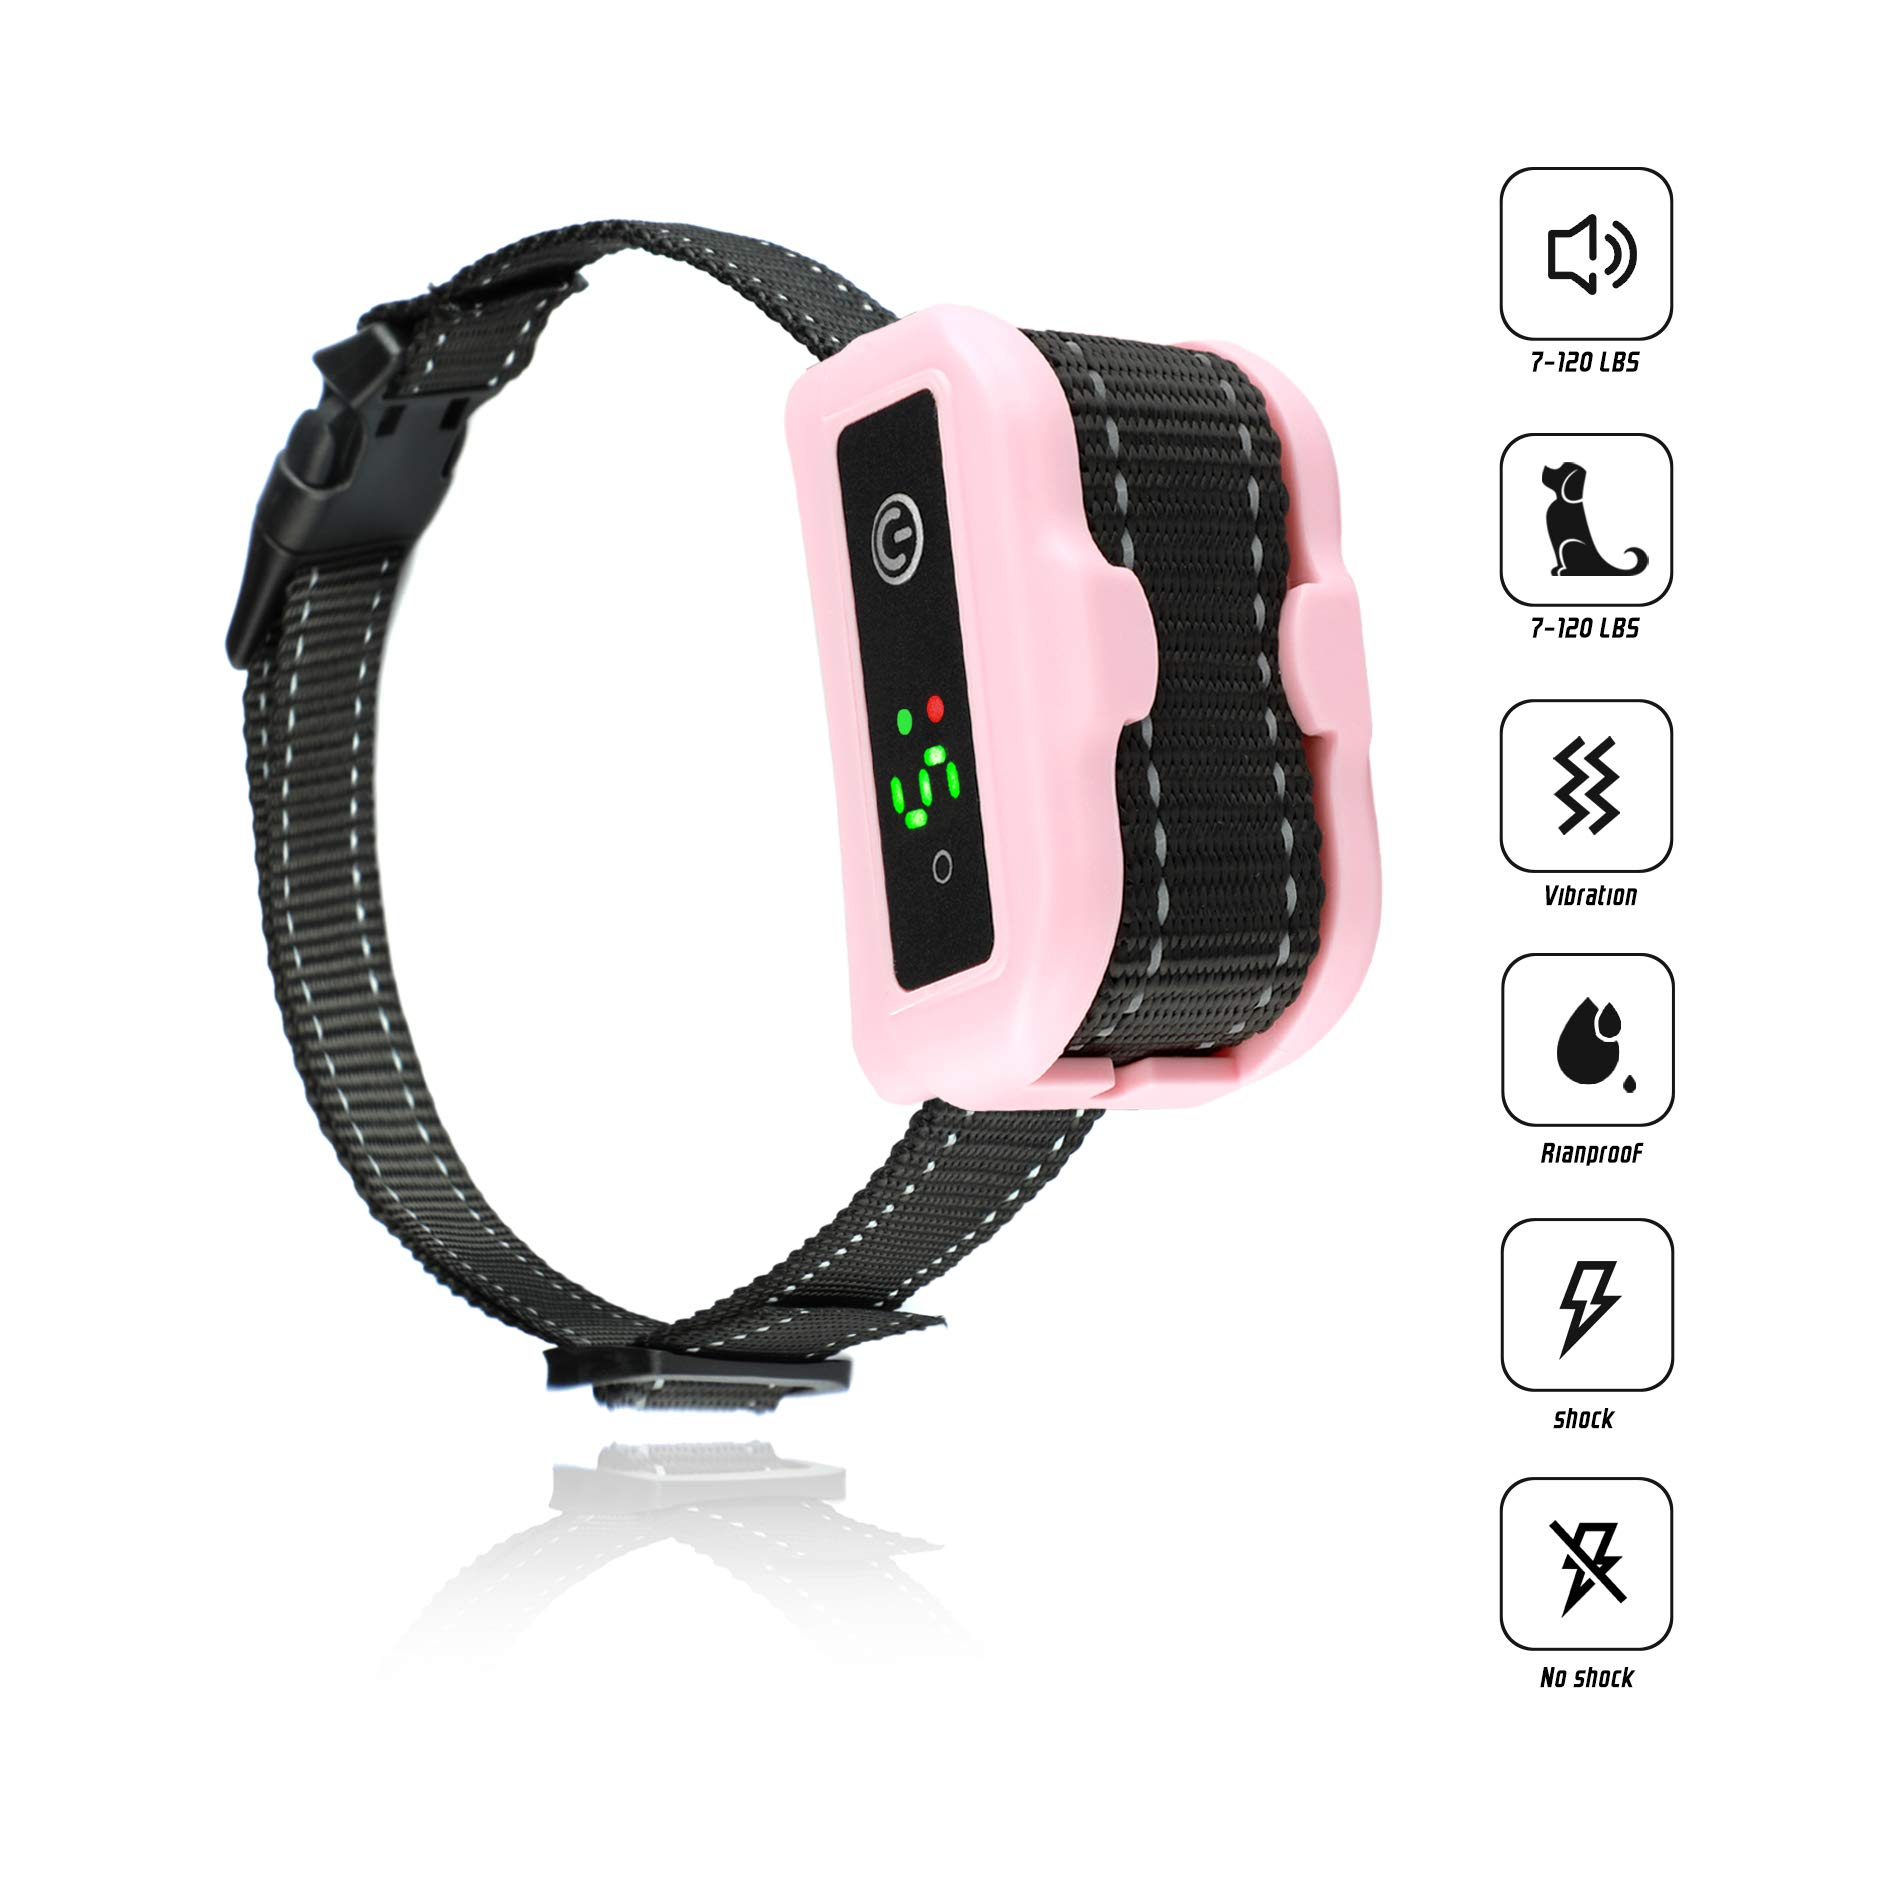 [Newest 2019]Anti Bark Collar for Small, Medium, Large Dogs-5 Adjustable Sensitivity and Intensity Levels-Dual Anti-Barking Modes-Rechargeable/Rainproof/Reflective-No Barking Dog shock collar (PINK)